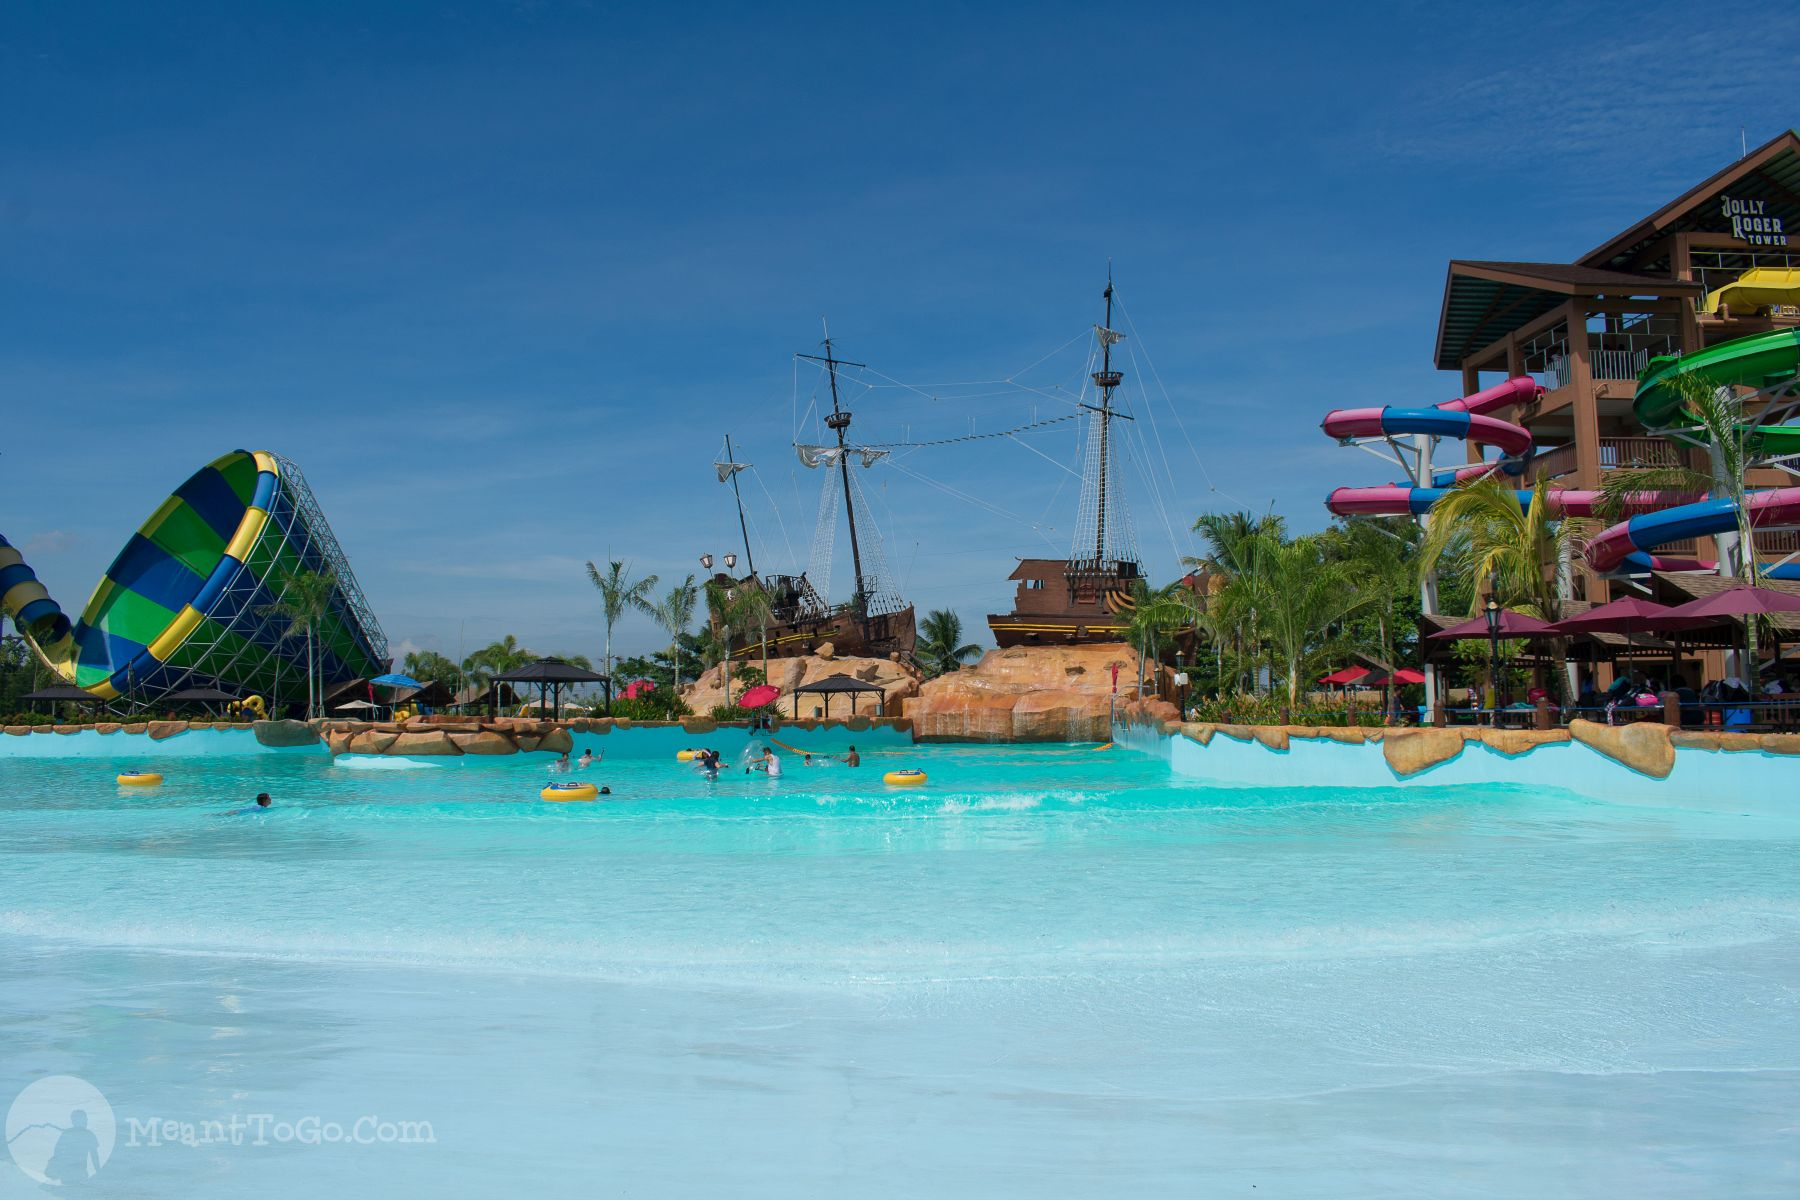 Buccaneer Bay, Seven Seas Waterpark & Resort, Opol, Misamins Oriental